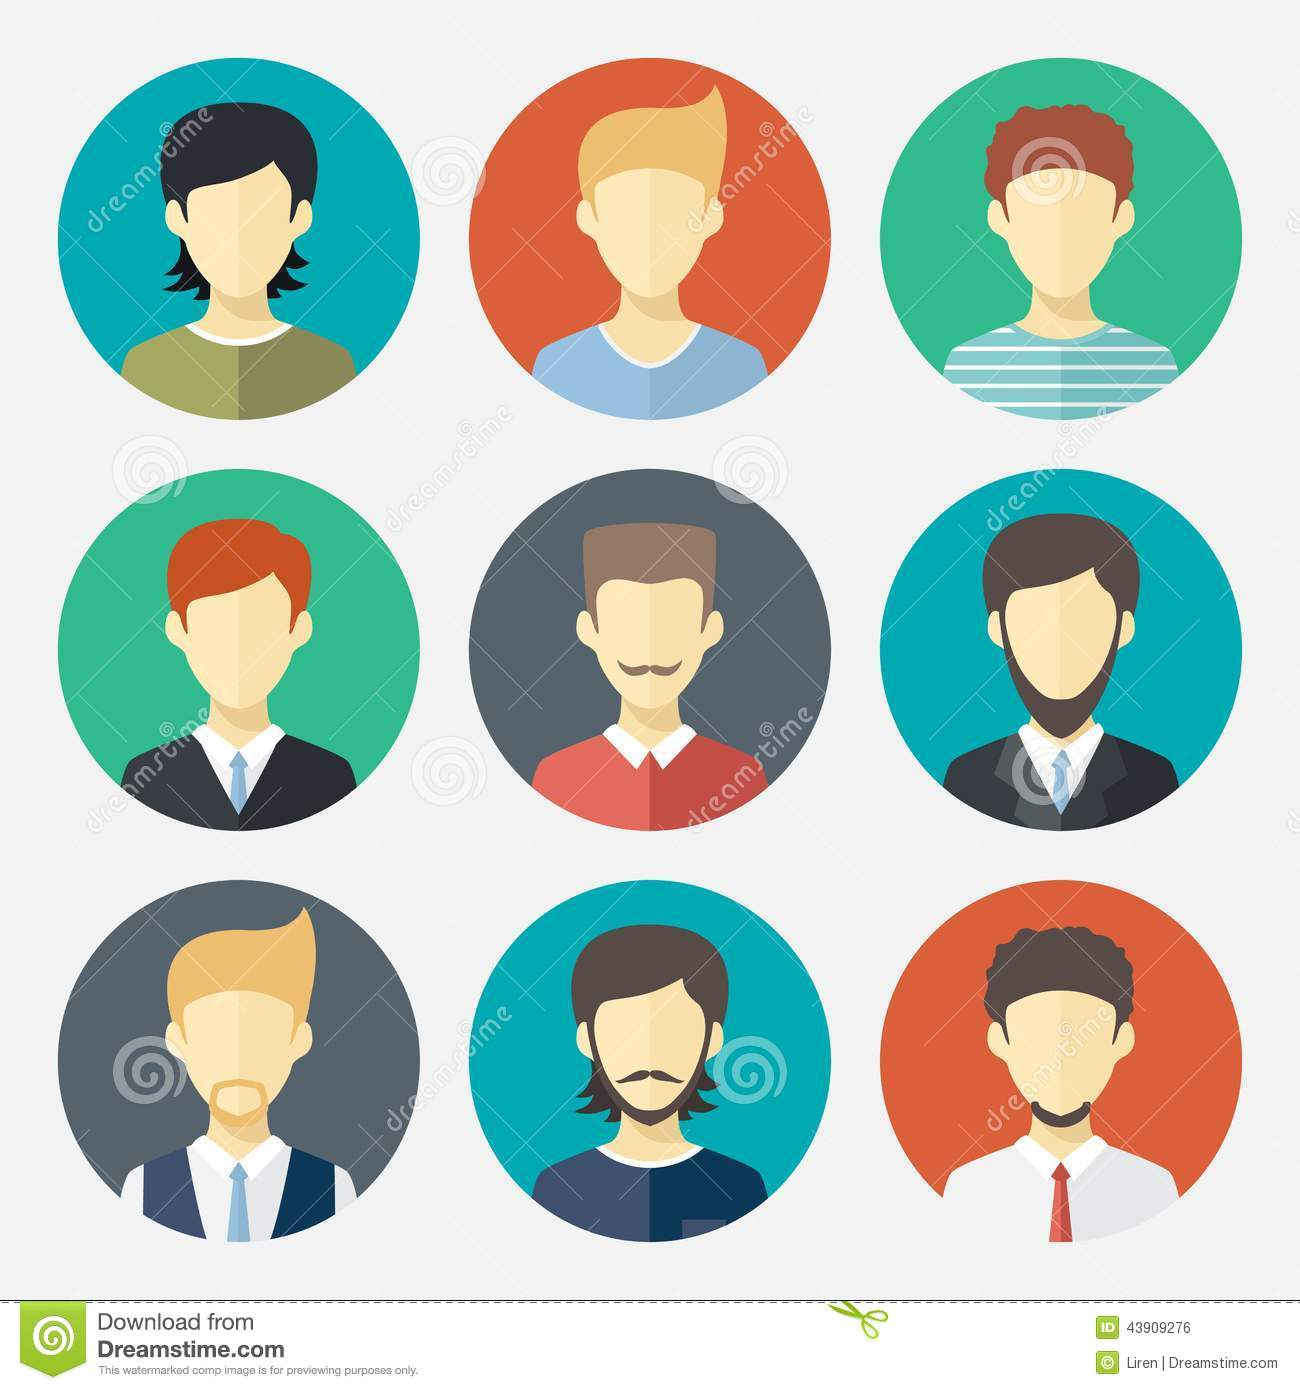 Generic Avatar Icon – images free download